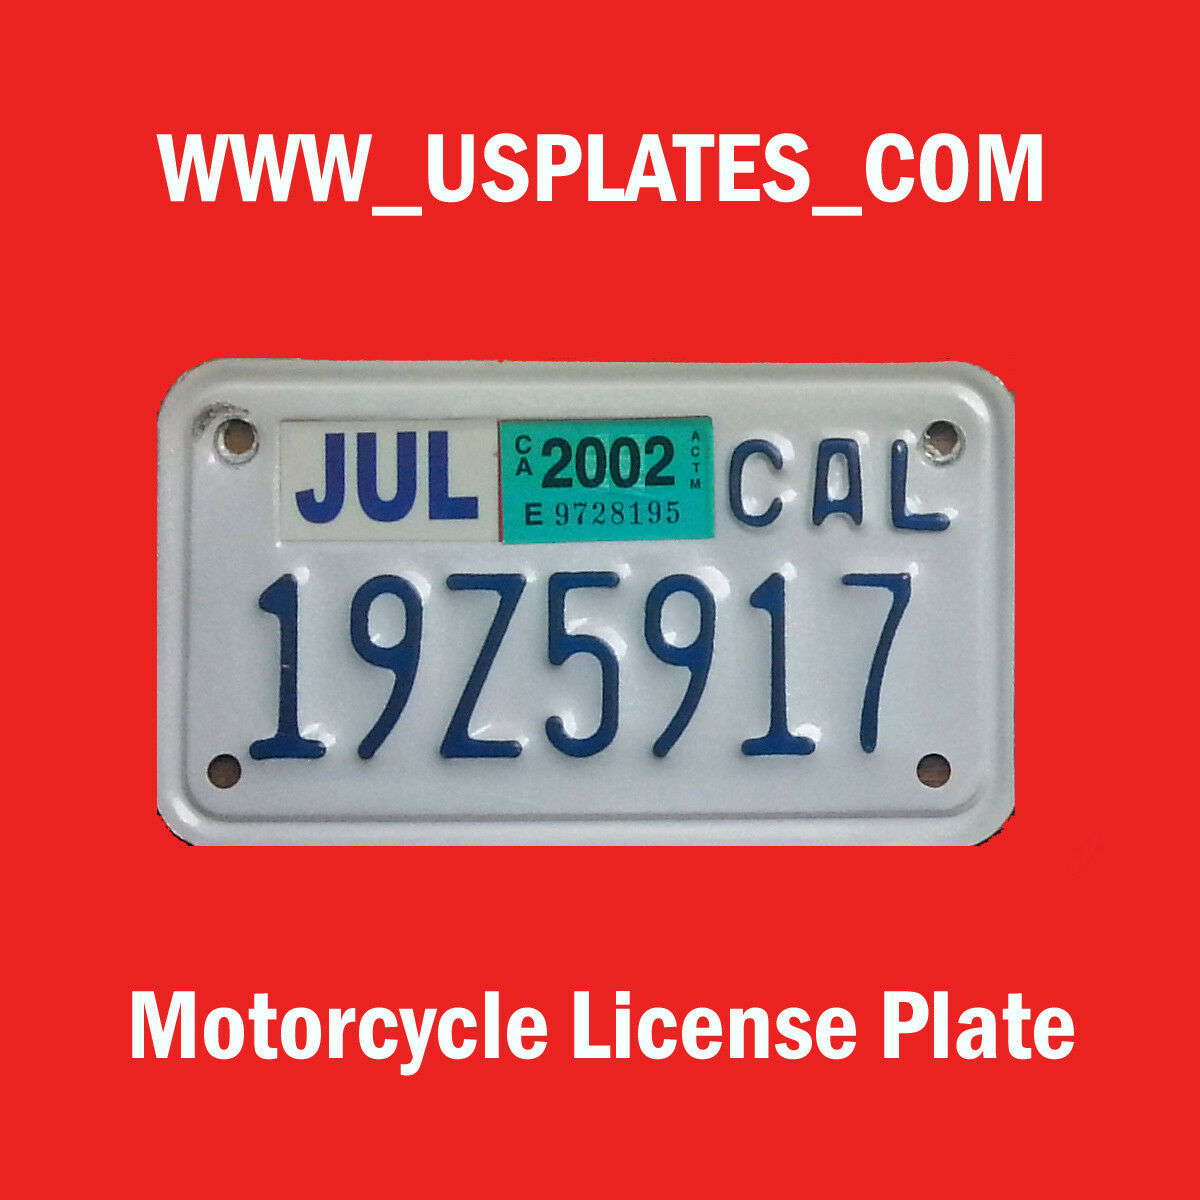 California motorcycle License Plate numbers Mean Anything in